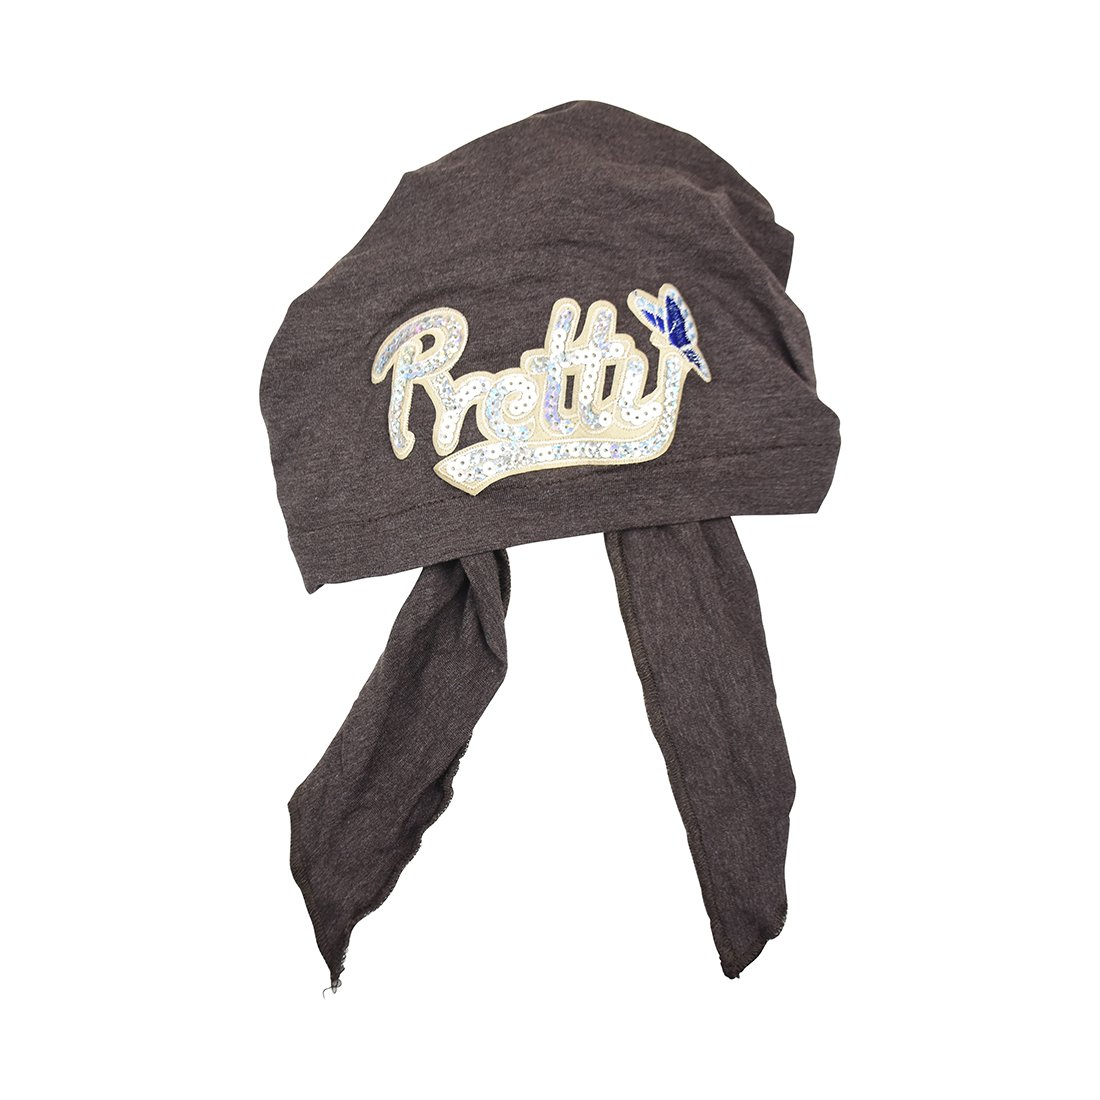 Sequin Pretty Applique on Child's Pretied Head Scarf Cancer Cap Landana Headscarves ldptk-black-a40